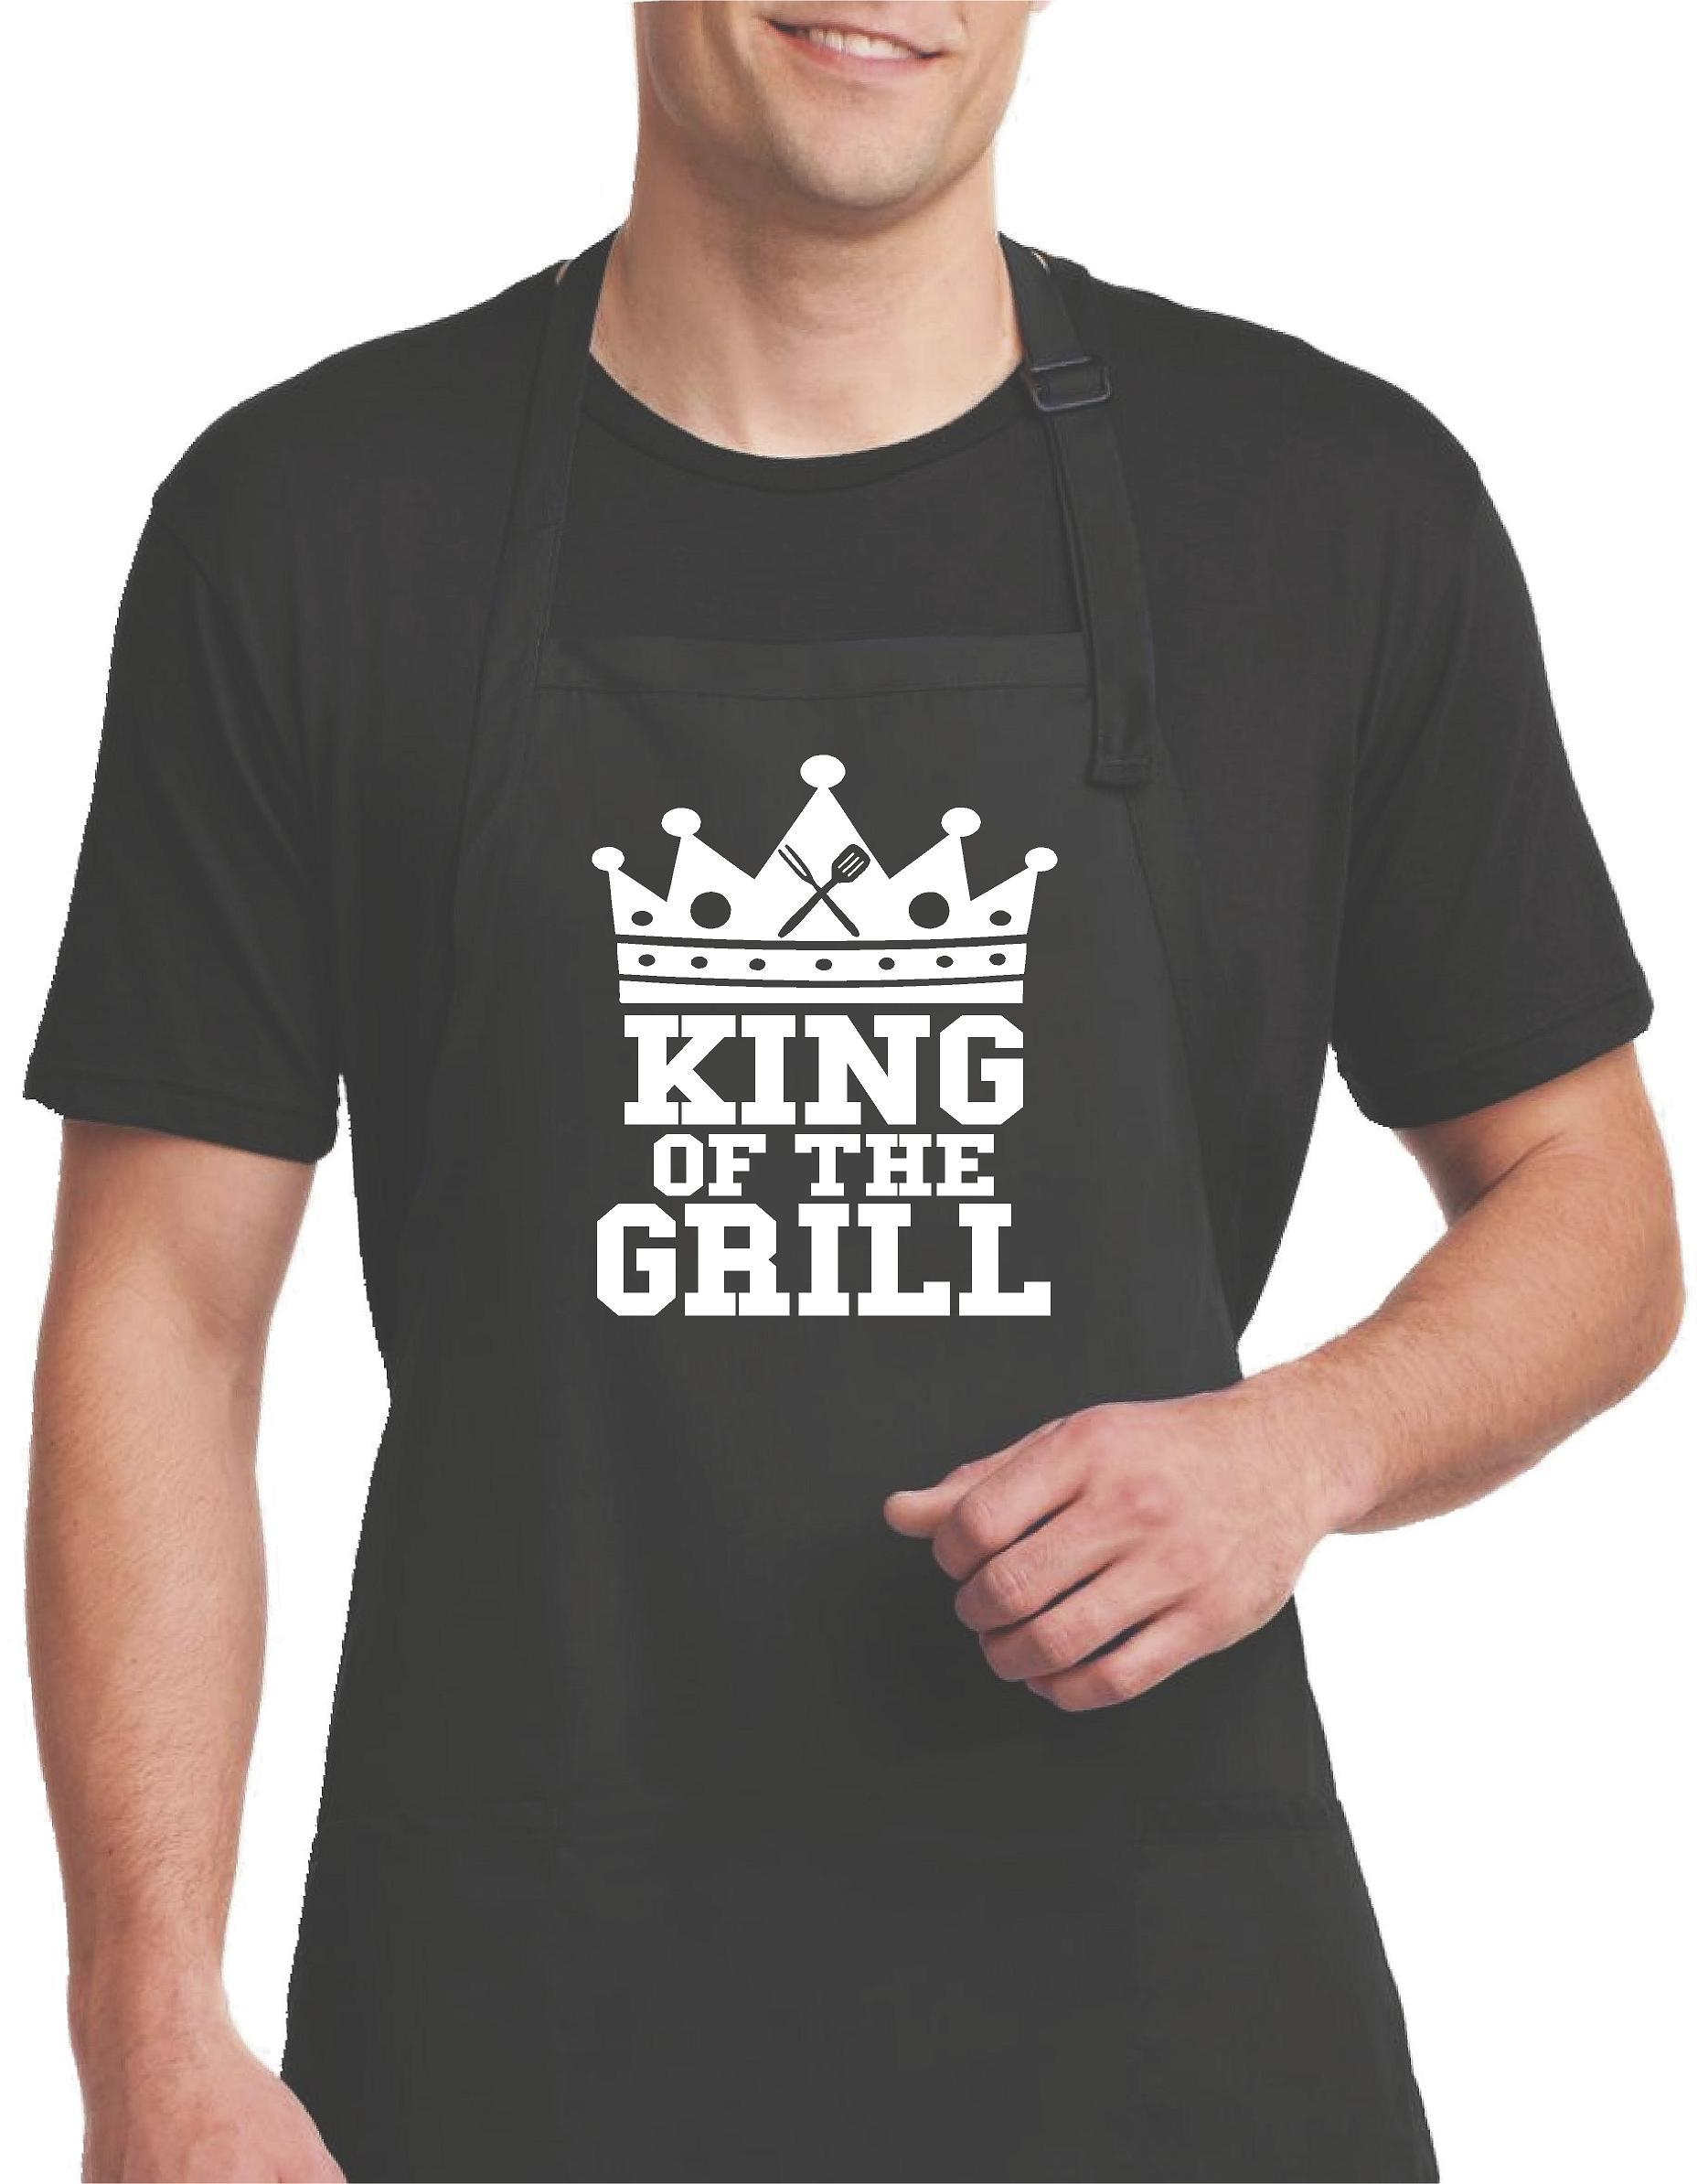 653d8c3b King of the Grill Barbecue Apron - Funny Apron For Men | DIY | Funny ...